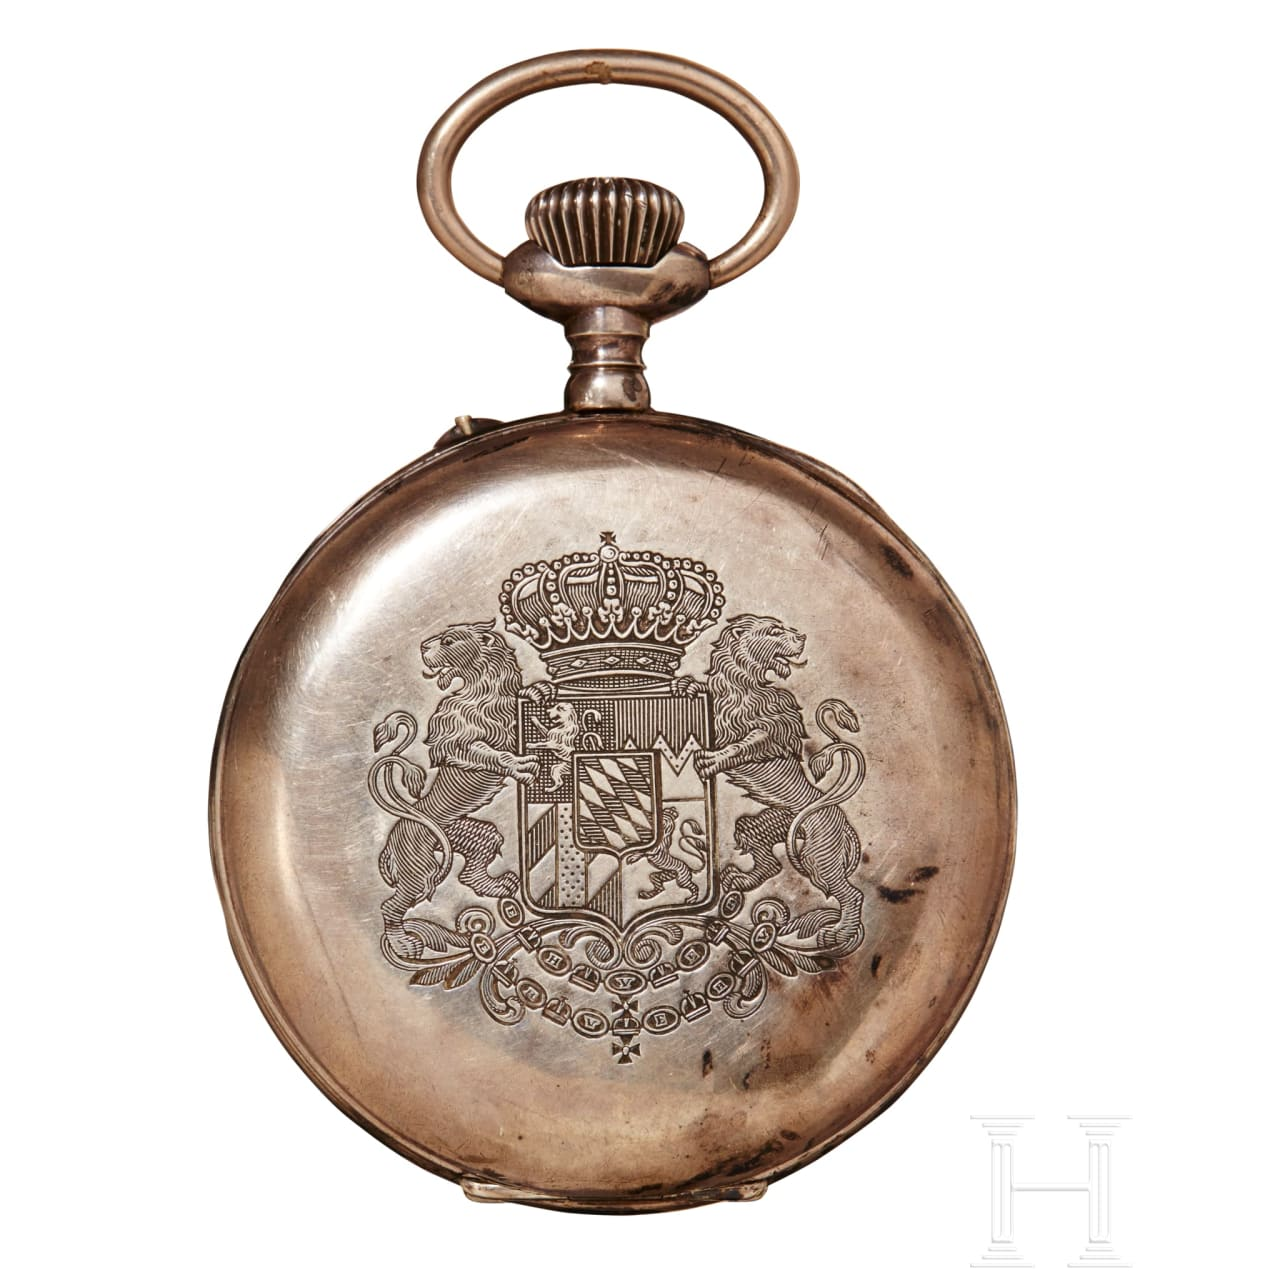 A Bavarian Pocket Watch